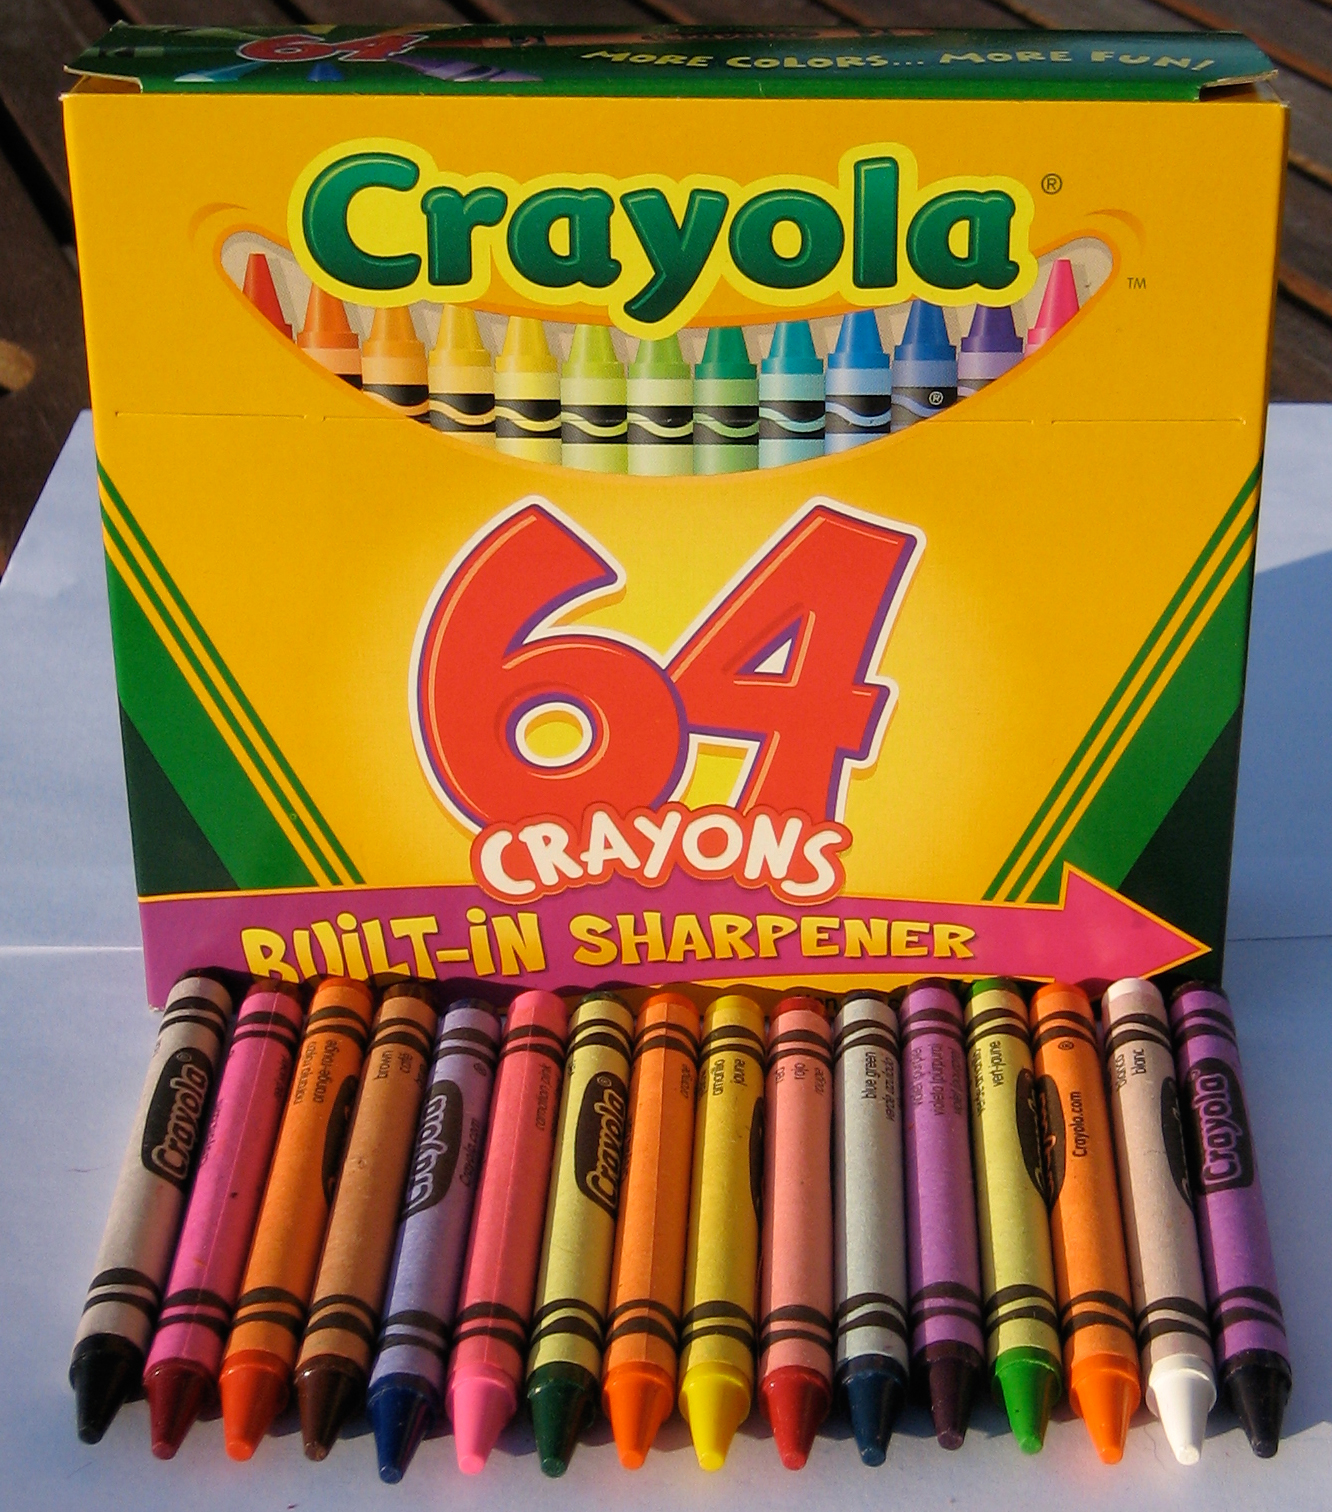 The famous Crayola crayon company is based in Easton.